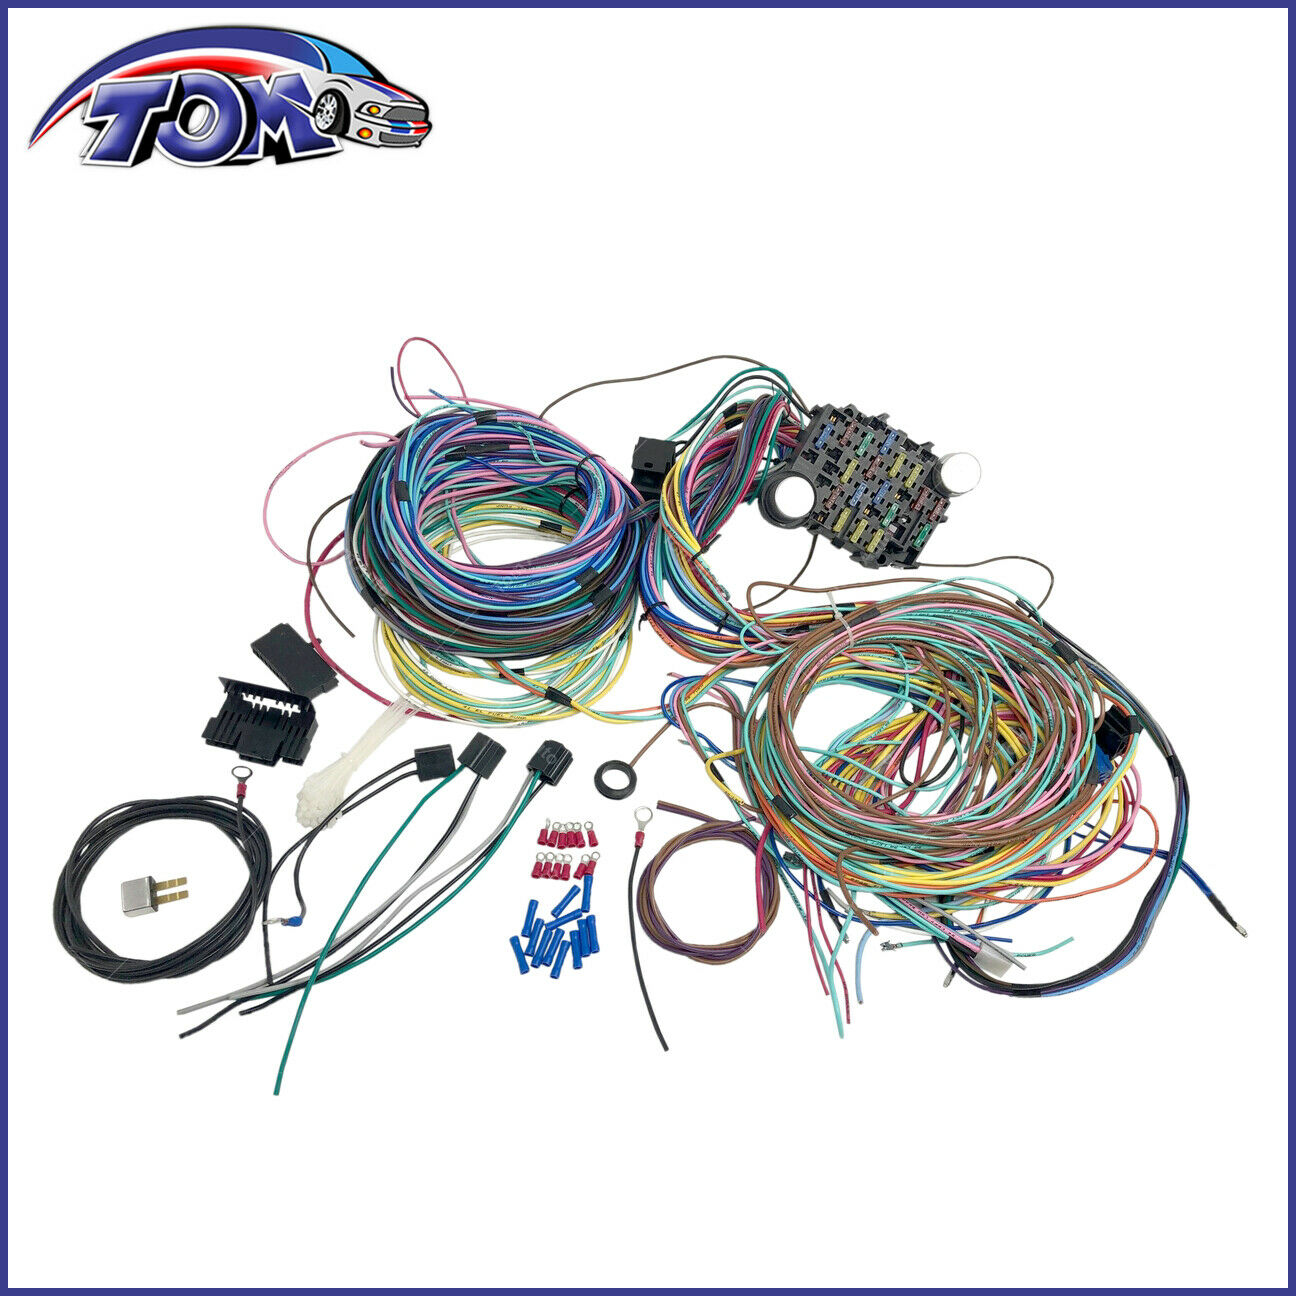 Wiring Harness Extra Wires Schematics Diagrams Painless 18 Circuit Universal 21 Chevy Mopar Ford Hotrods Rh Picclick Com Motorcycle